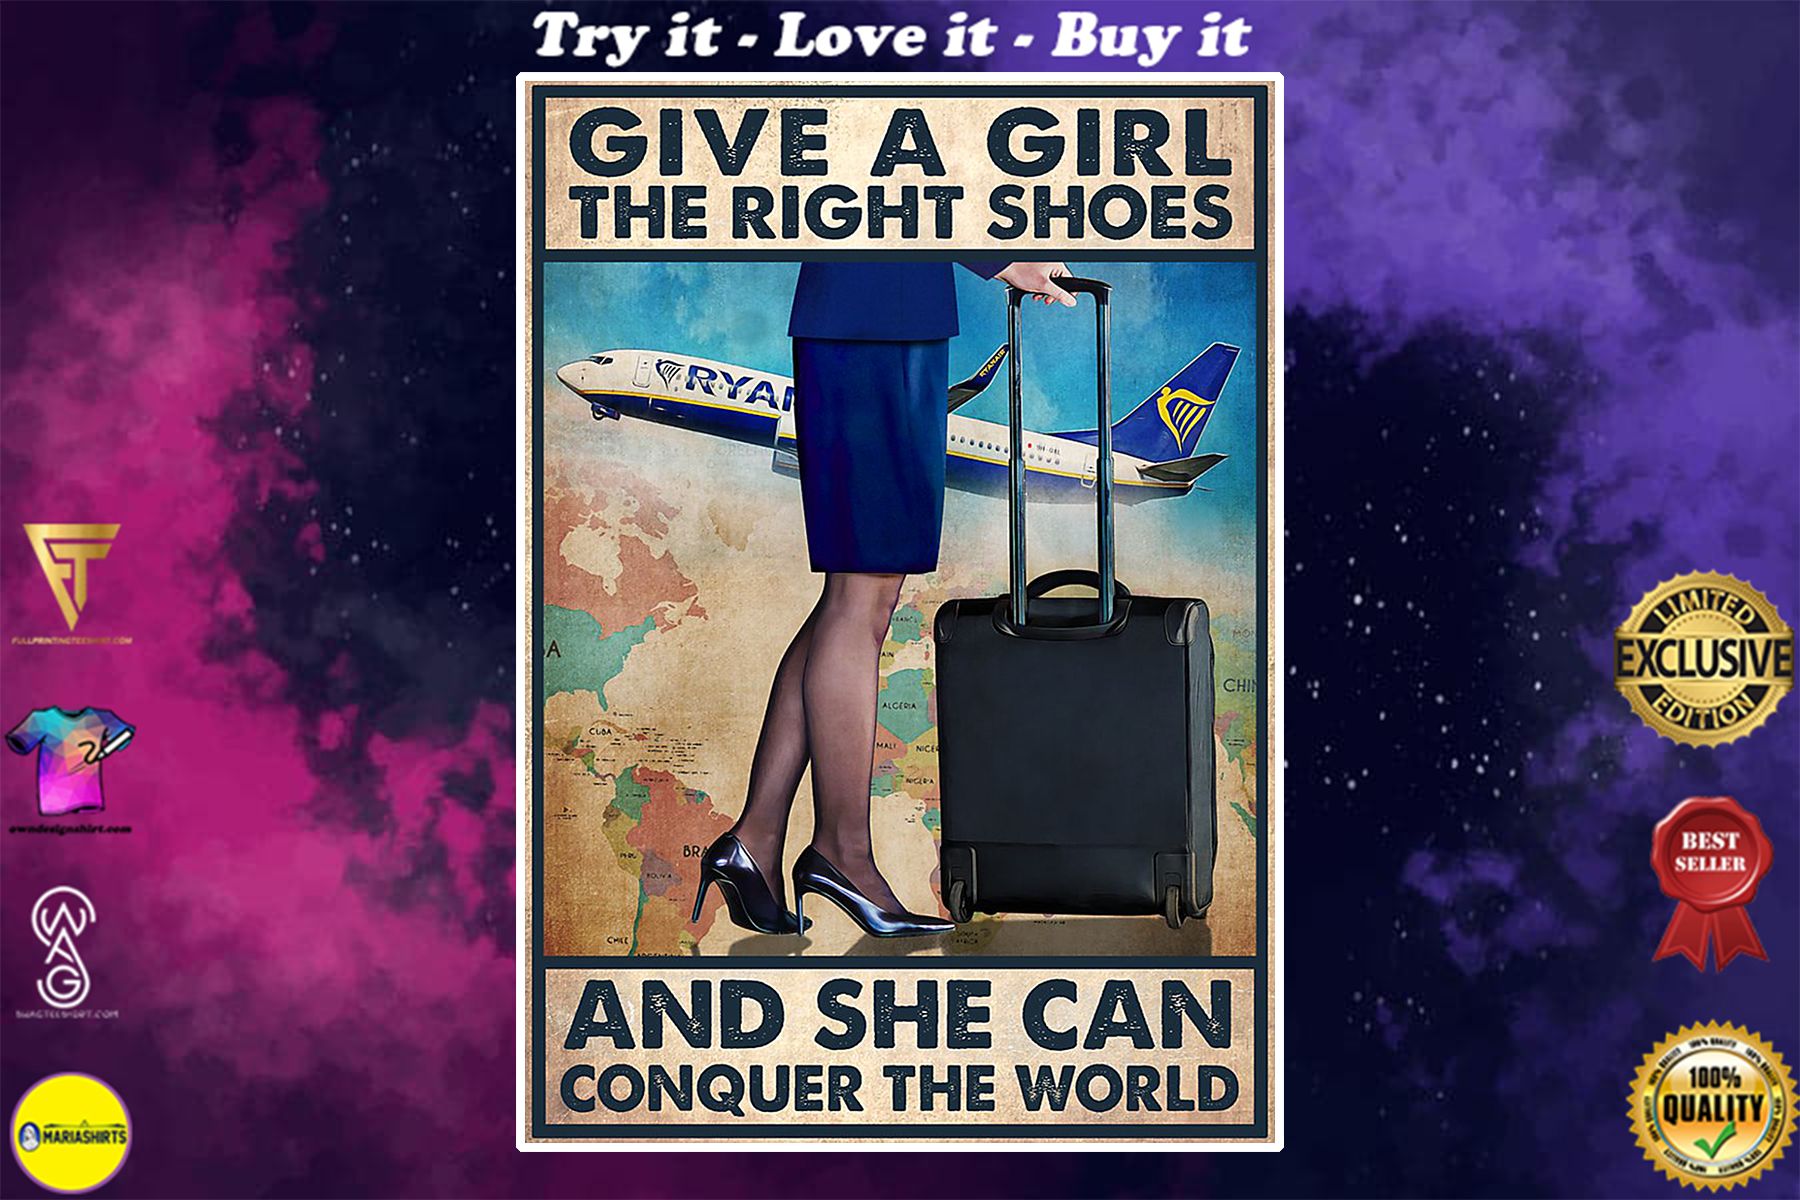 vintage flight attendant give a girl the right shoes and she can conquer the world poster